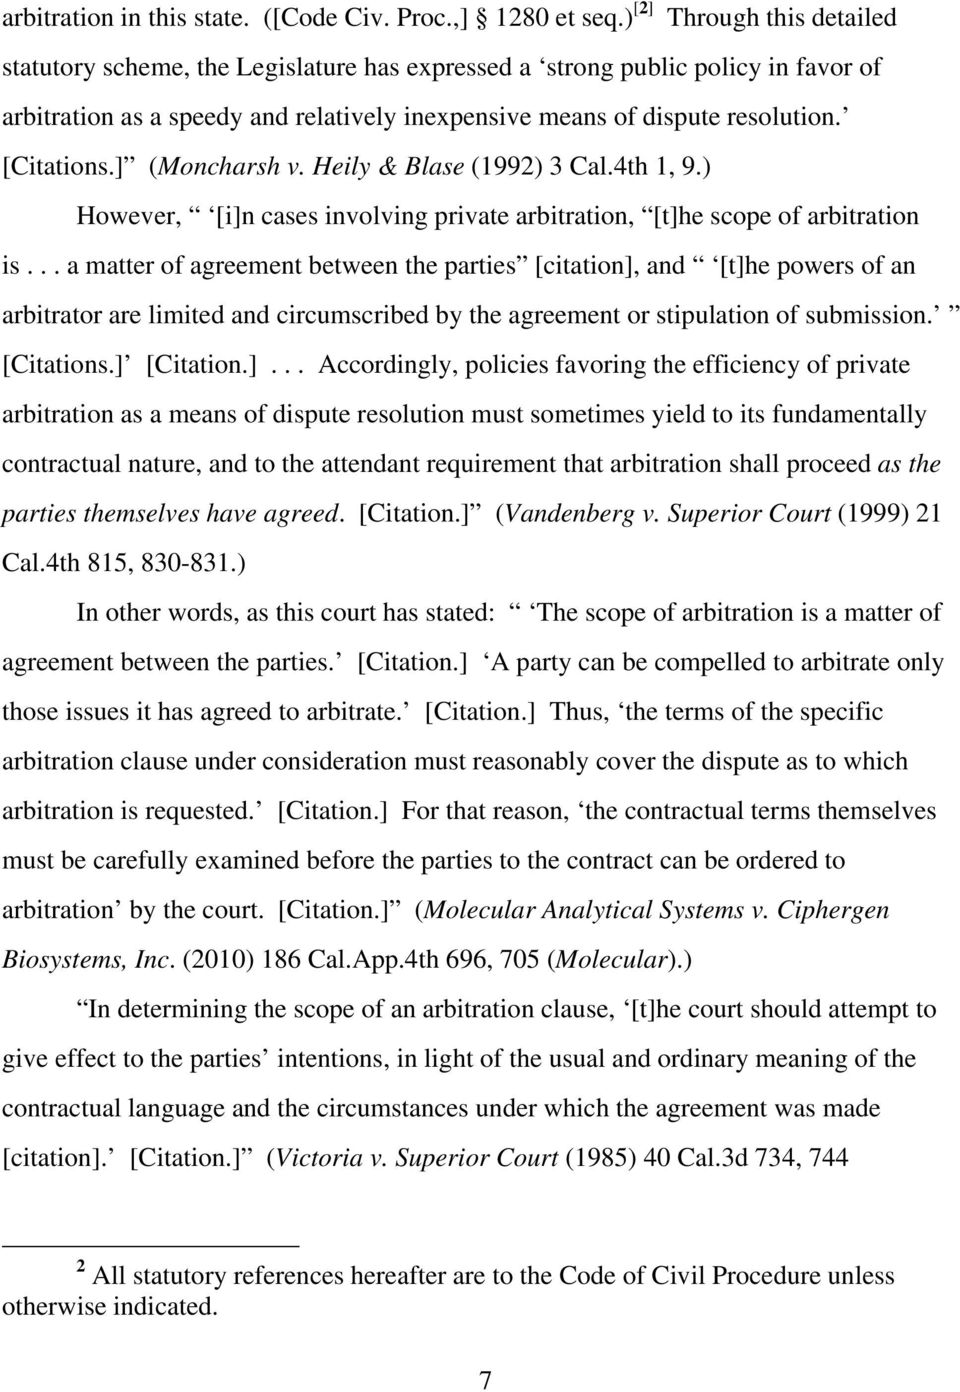 [Citations.] (Moncharsh v. Heily & Blase (1992) 3 Cal.4th 1, 9.) However, [i]n cases involving private arbitration, [t]he scope of arbitration is.